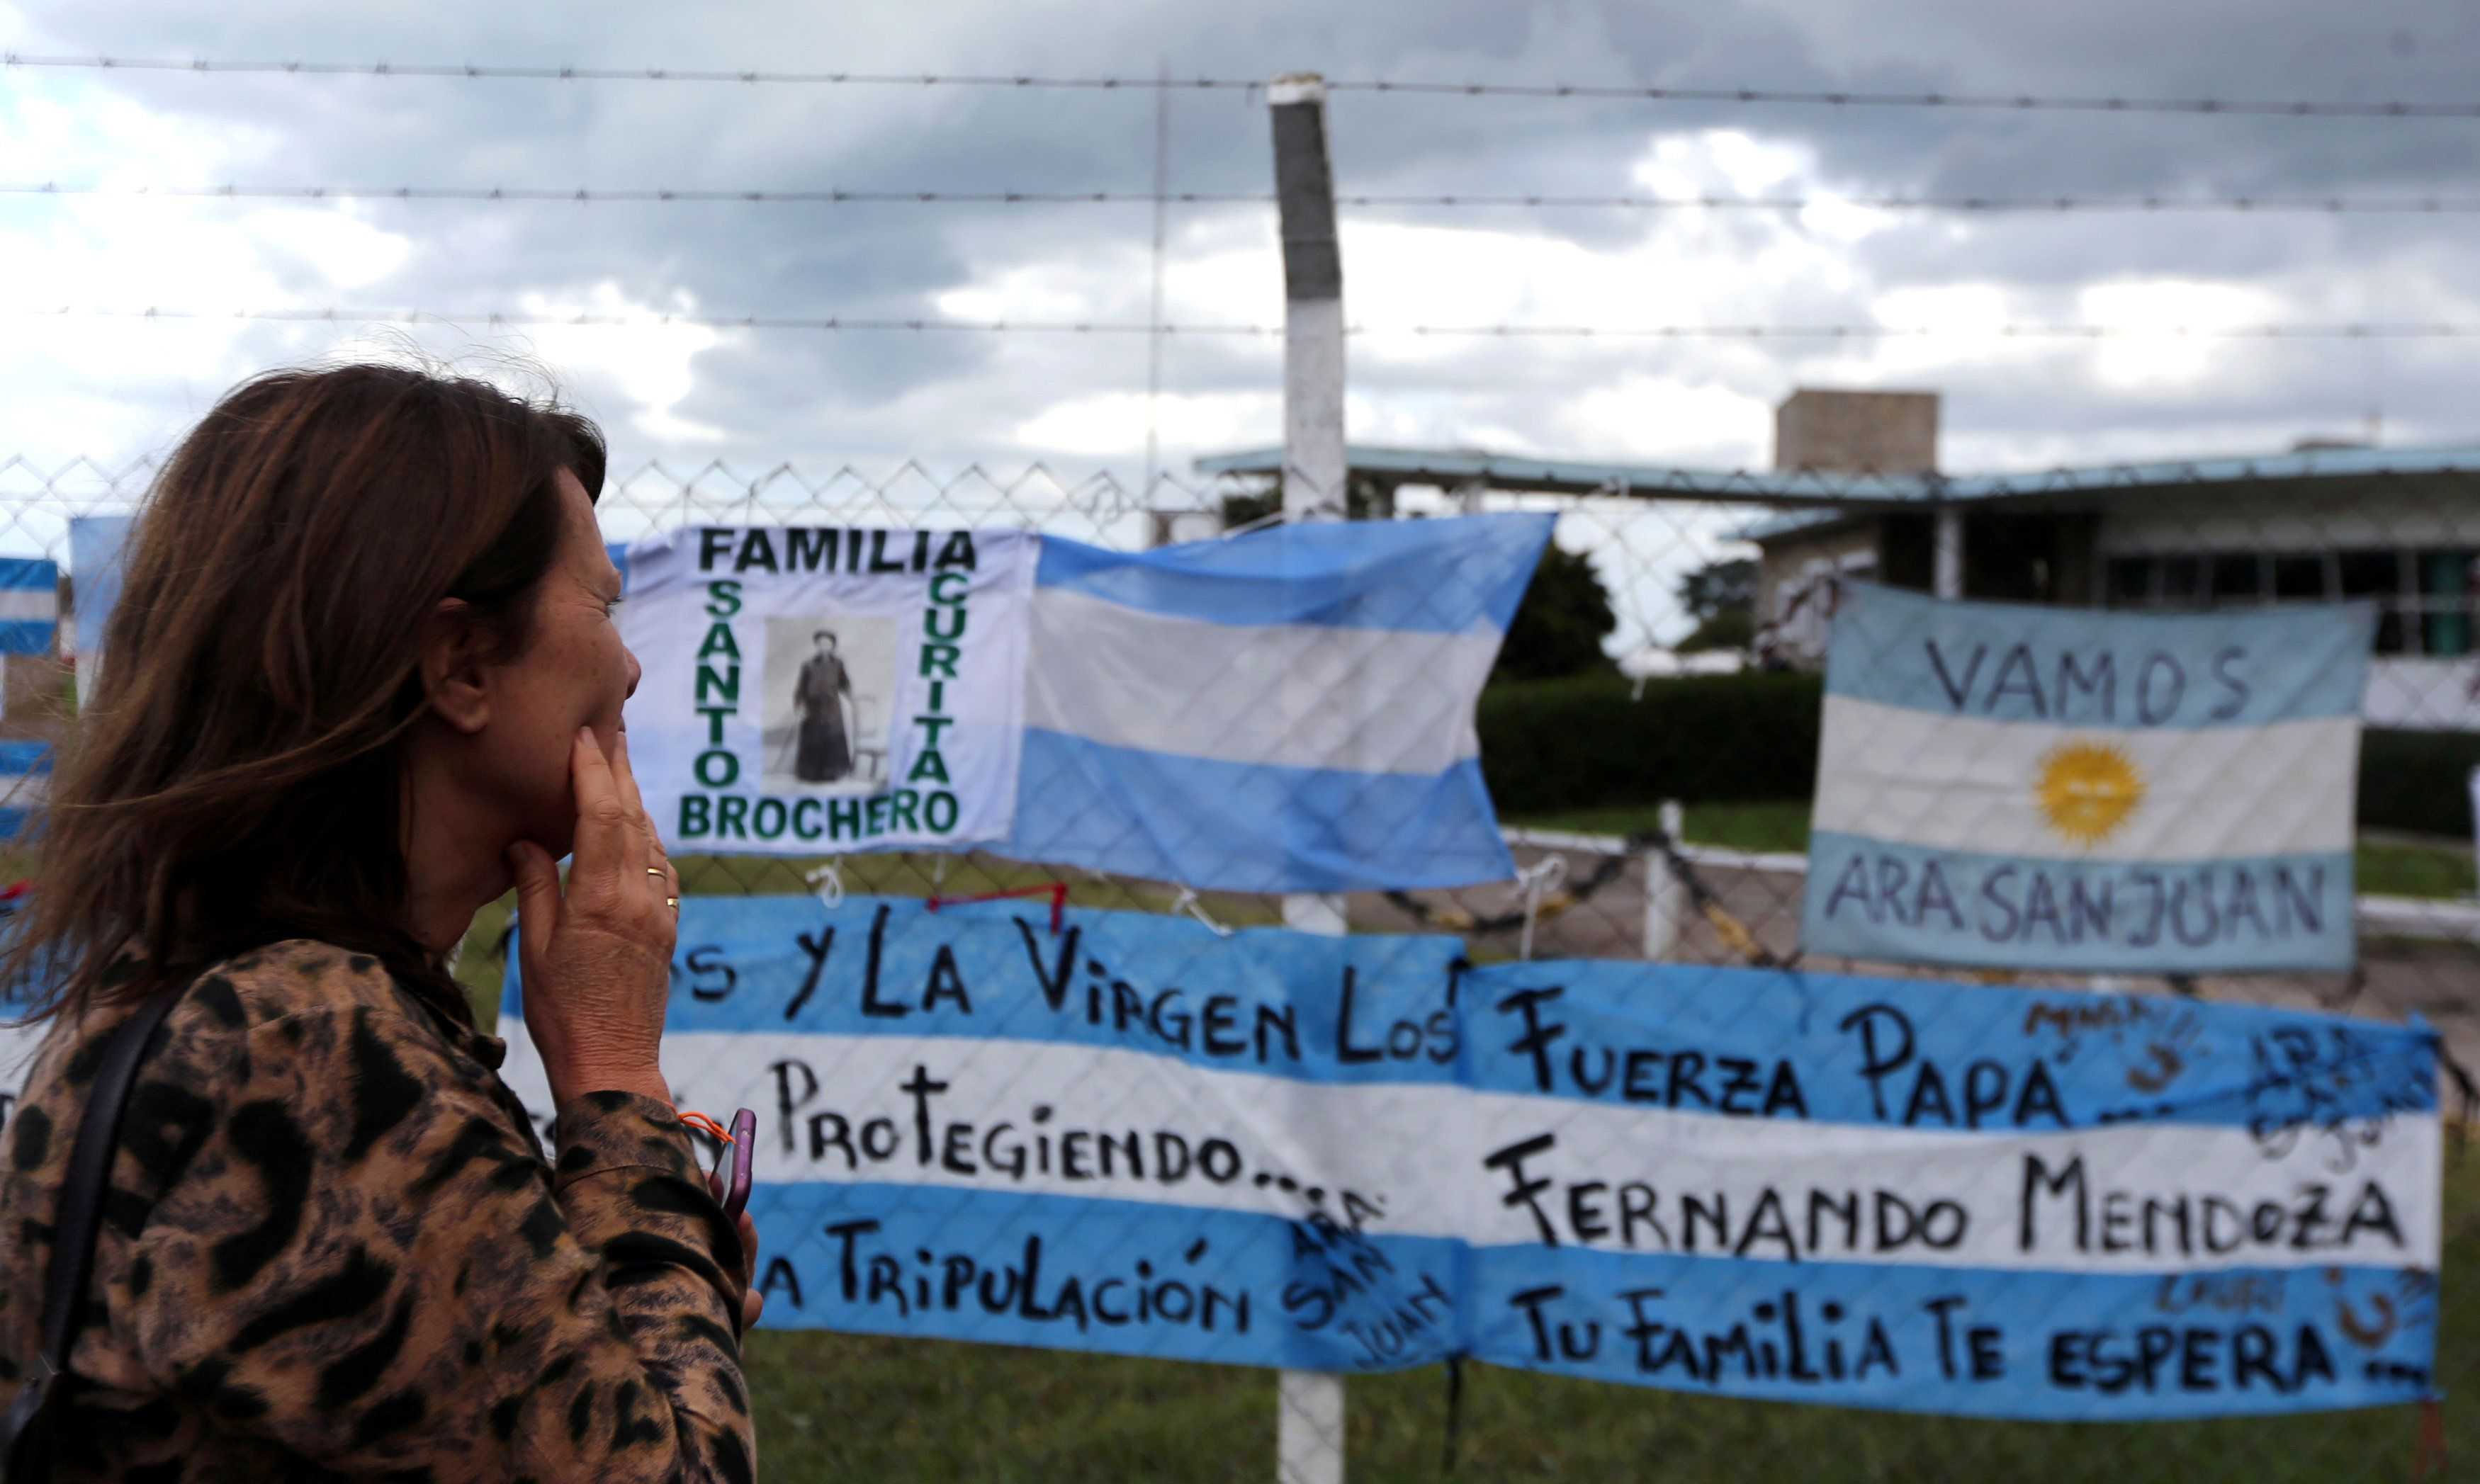 The Mysterious Disappearance Of An Argentine Navy Sub Just Got Even Stranger